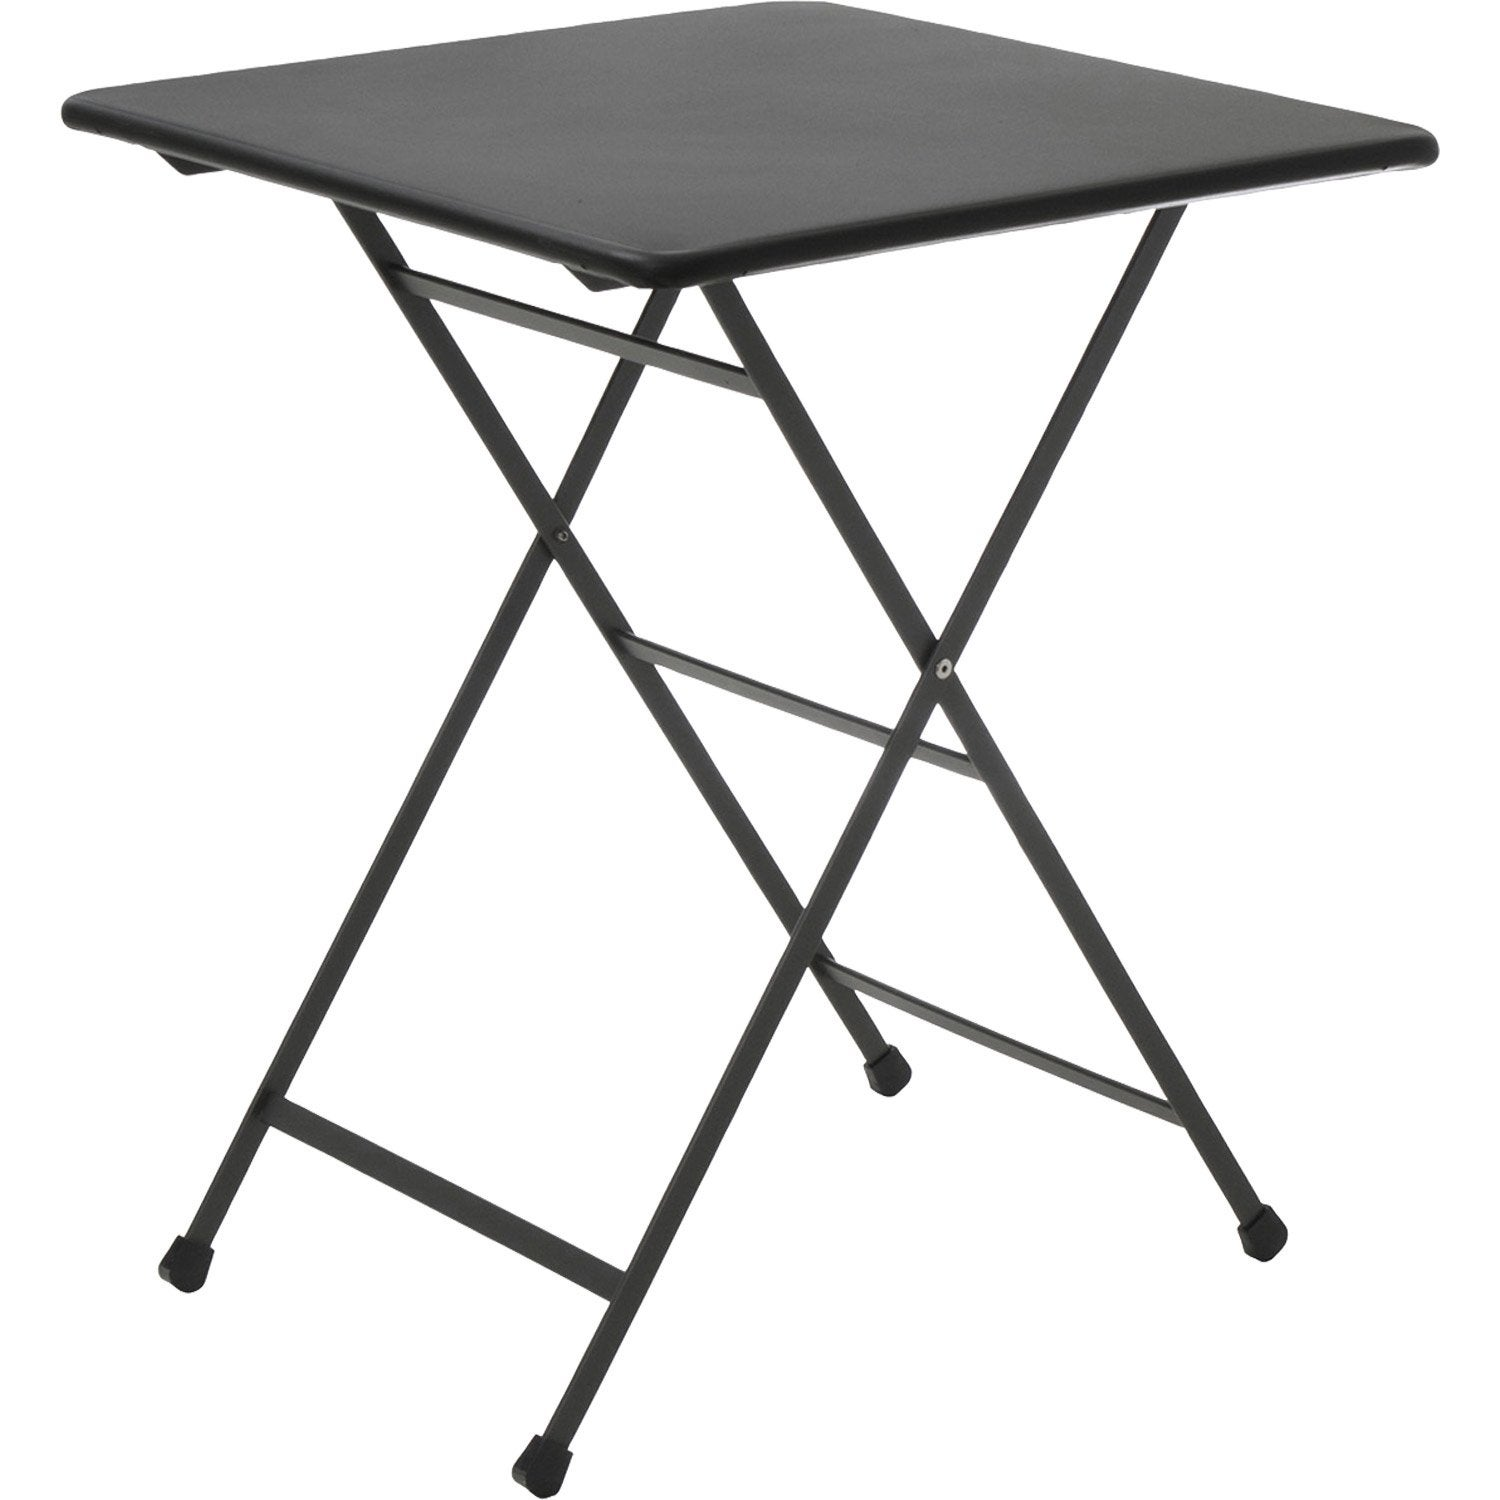 Table de jardin rainbow carr e gris 2 personnes leroy merlin - Leroy merlin table jardin ...